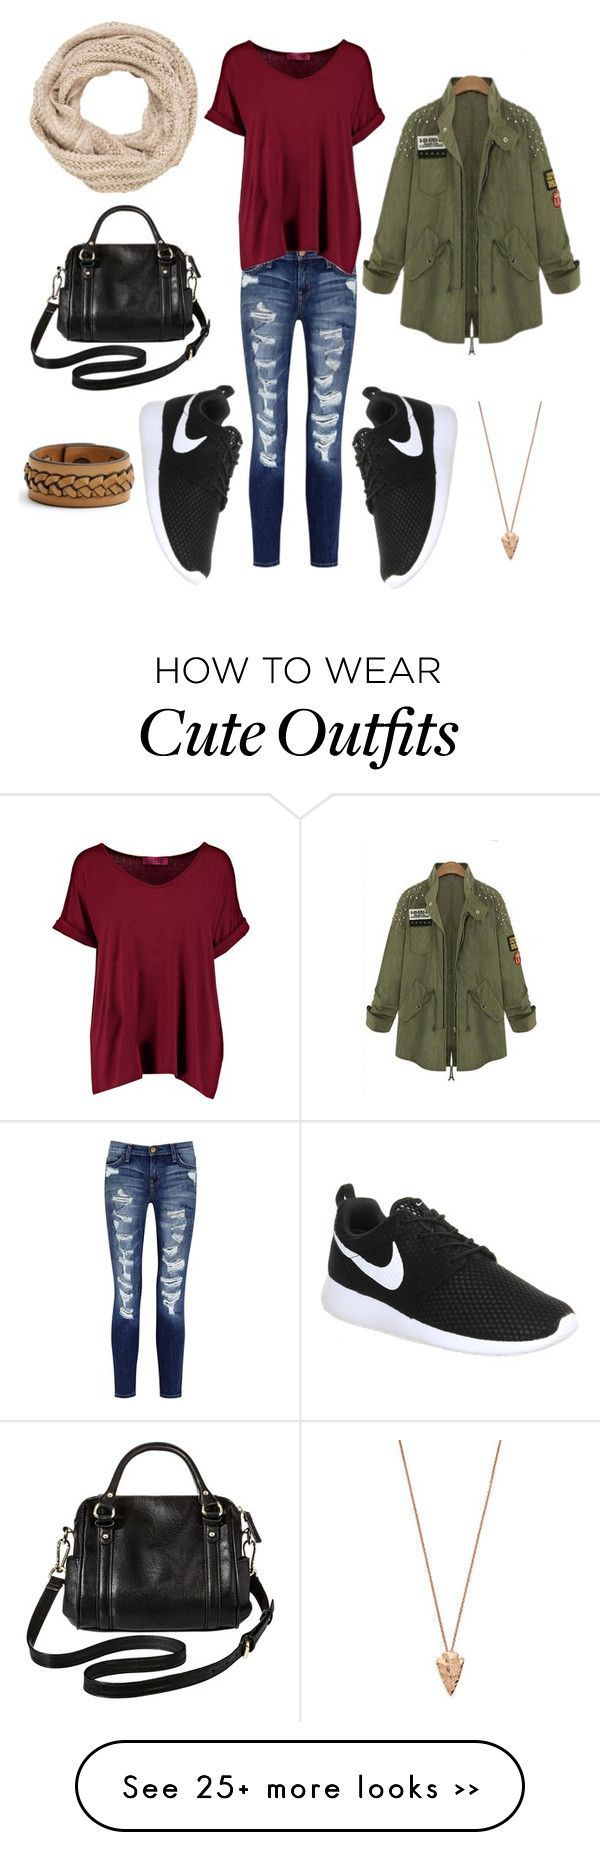 """cute but casual day time look "" by kaitlynerose on Polyvore featuring Current/Elliott, Boohoo, NIKE, Merona, maurices, Pamela Love and Frye"